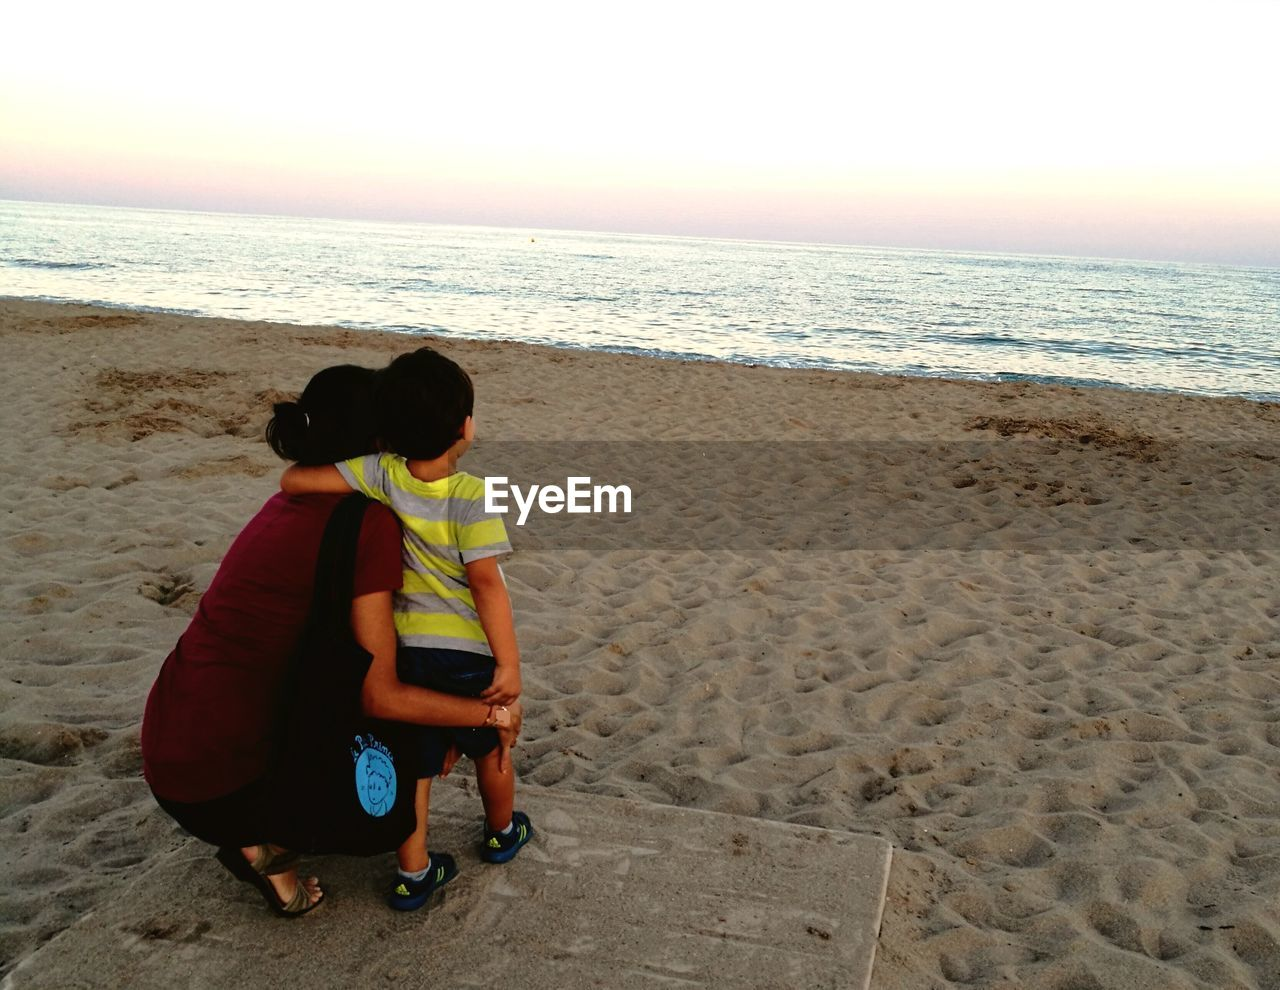 sea, beach, real people, horizon over water, rear view, full length, sand, childhood, togetherness, leisure activity, boys, vacations, love, lifestyles, nature, family with one child, beauty in nature, water, scenics, bonding, day, women, clear sky, sitting, outdoors, sky, standing, people